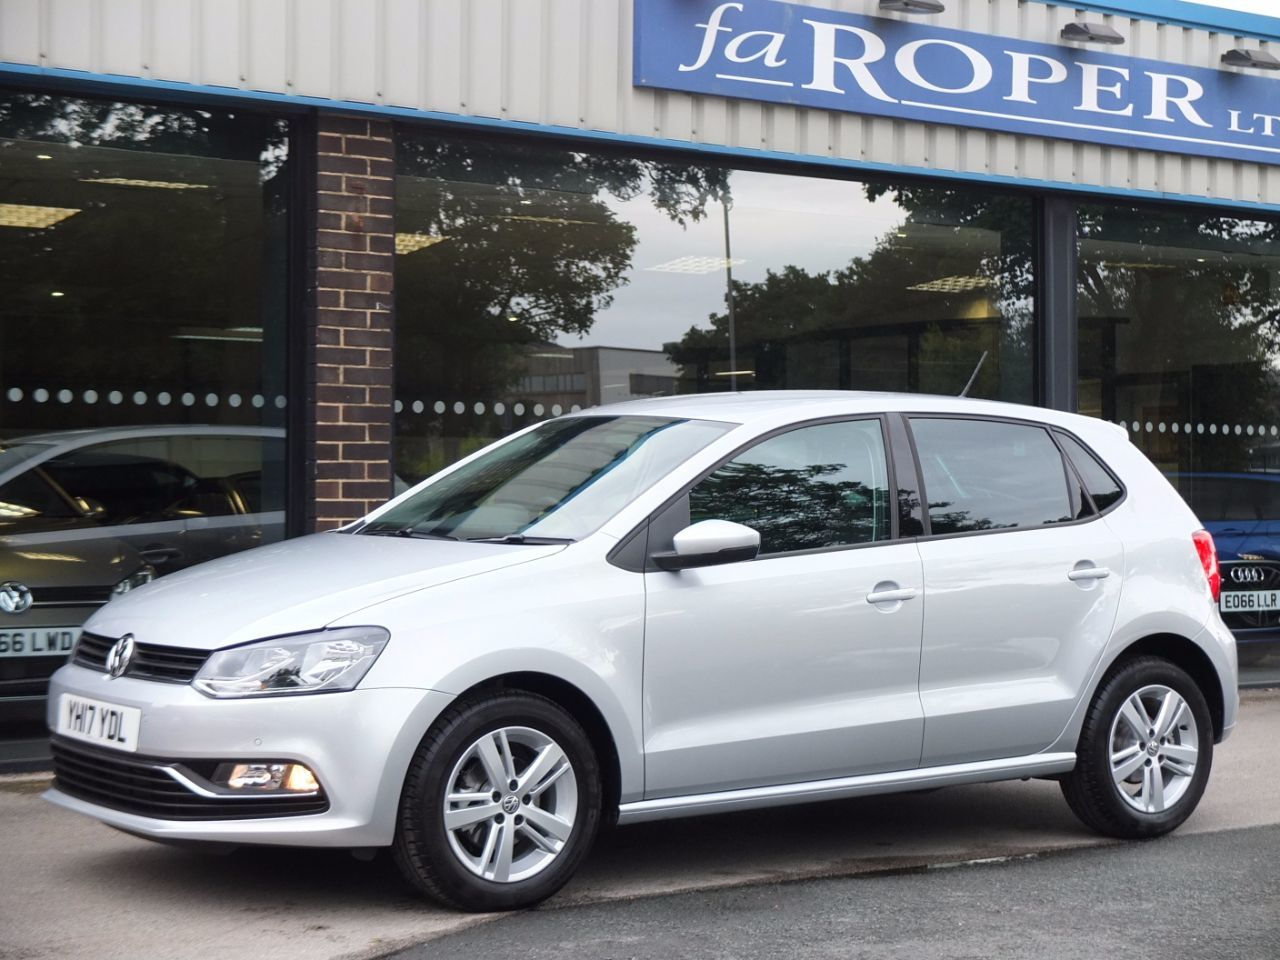 Volkswagen Polo 1.2 TSI Match Edition 5 door Hatchback Petrol Reflex Silver Metallic